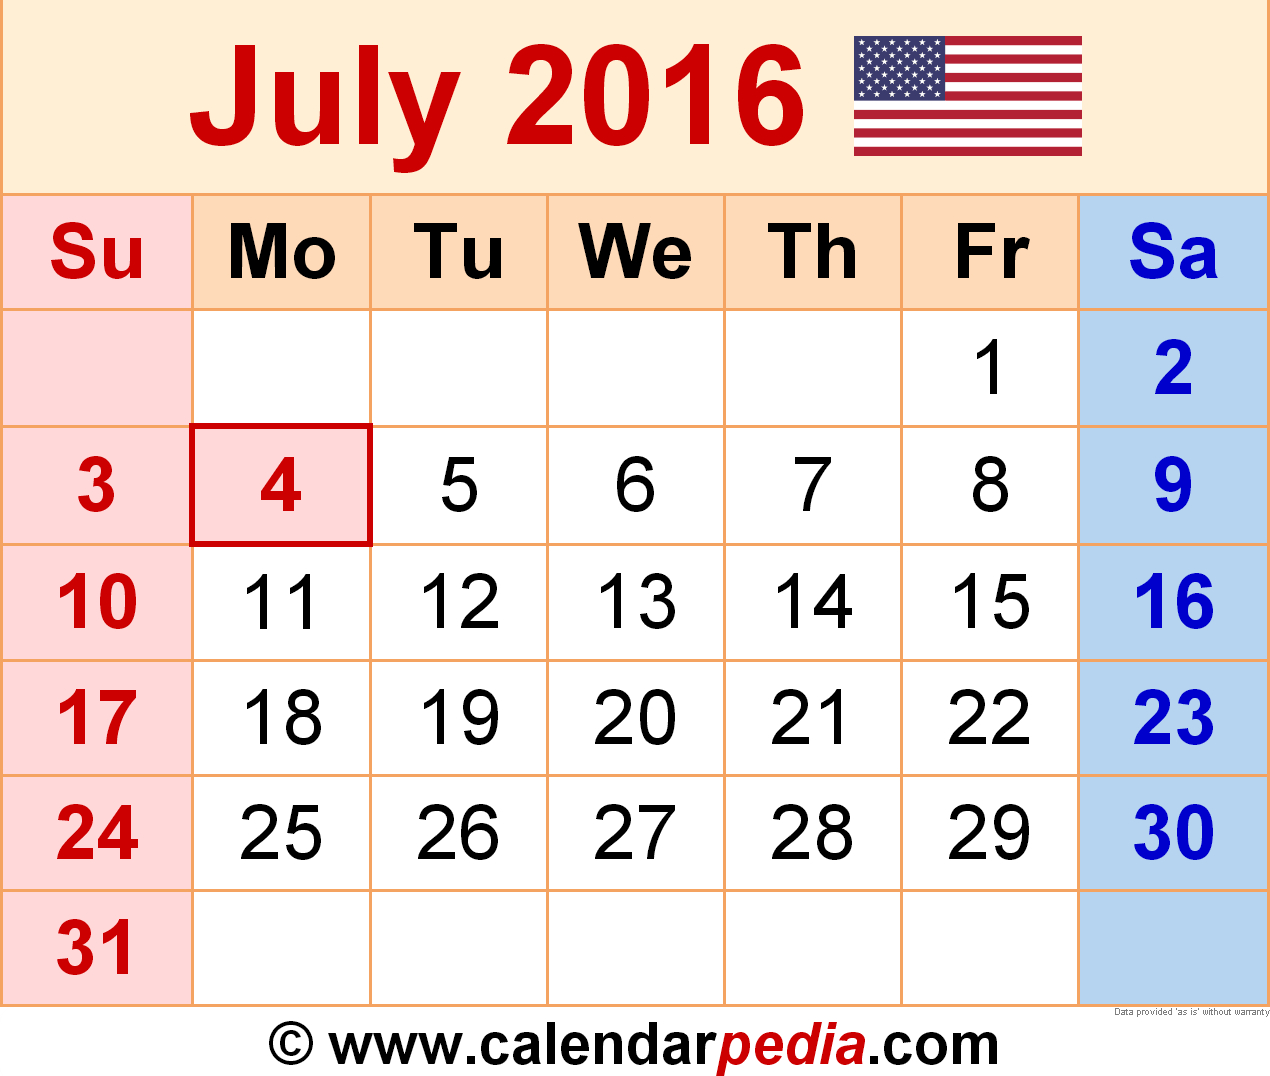 July 2016  Calendar Templates For Word, Excel And Pdf within July 2016 Calendar With Holidays